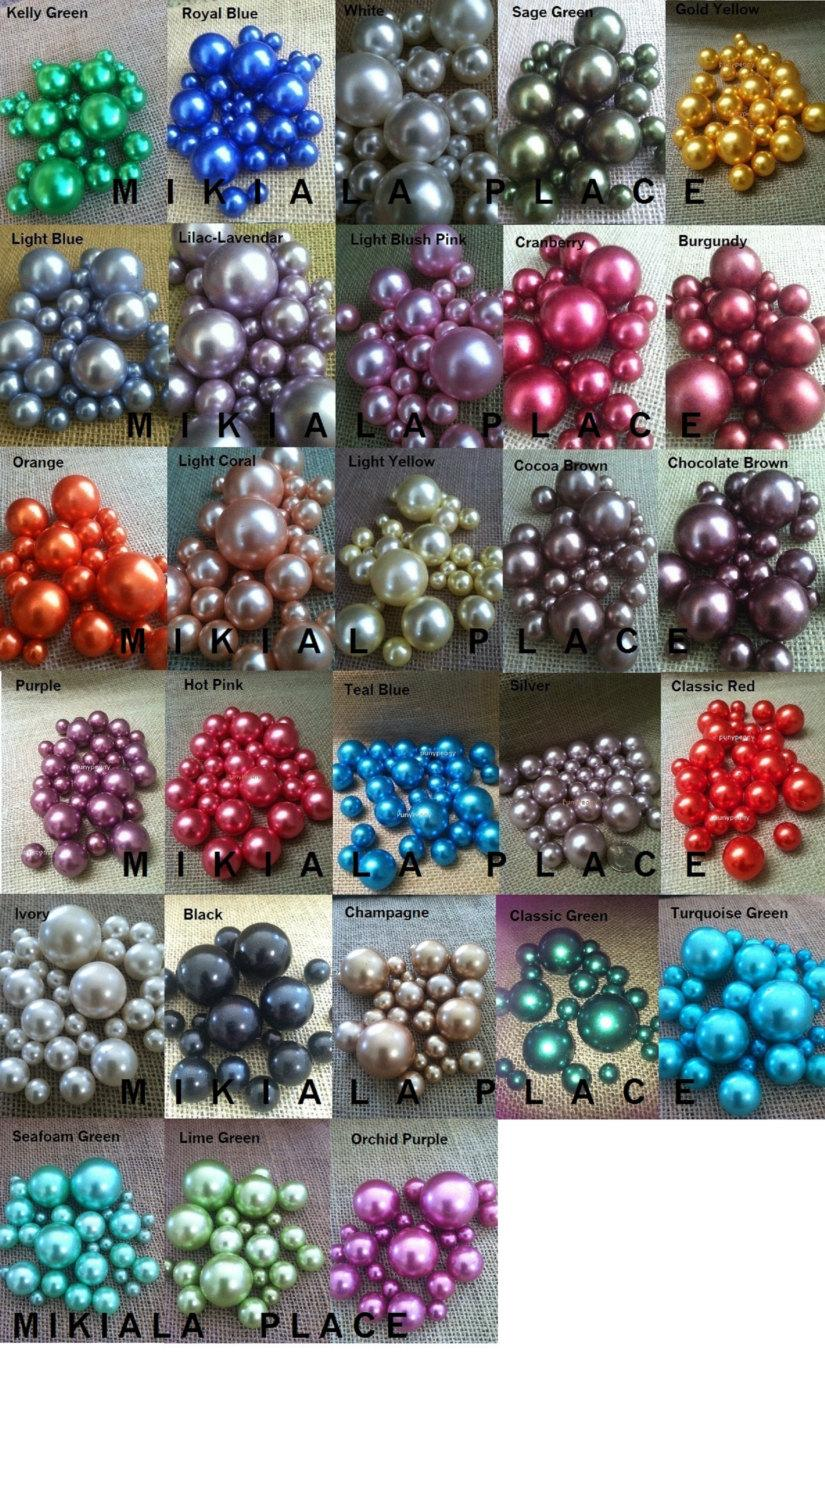 80pc Elegant Floating Pearl Gems For Home Accents Wedding Decor Table Confetti